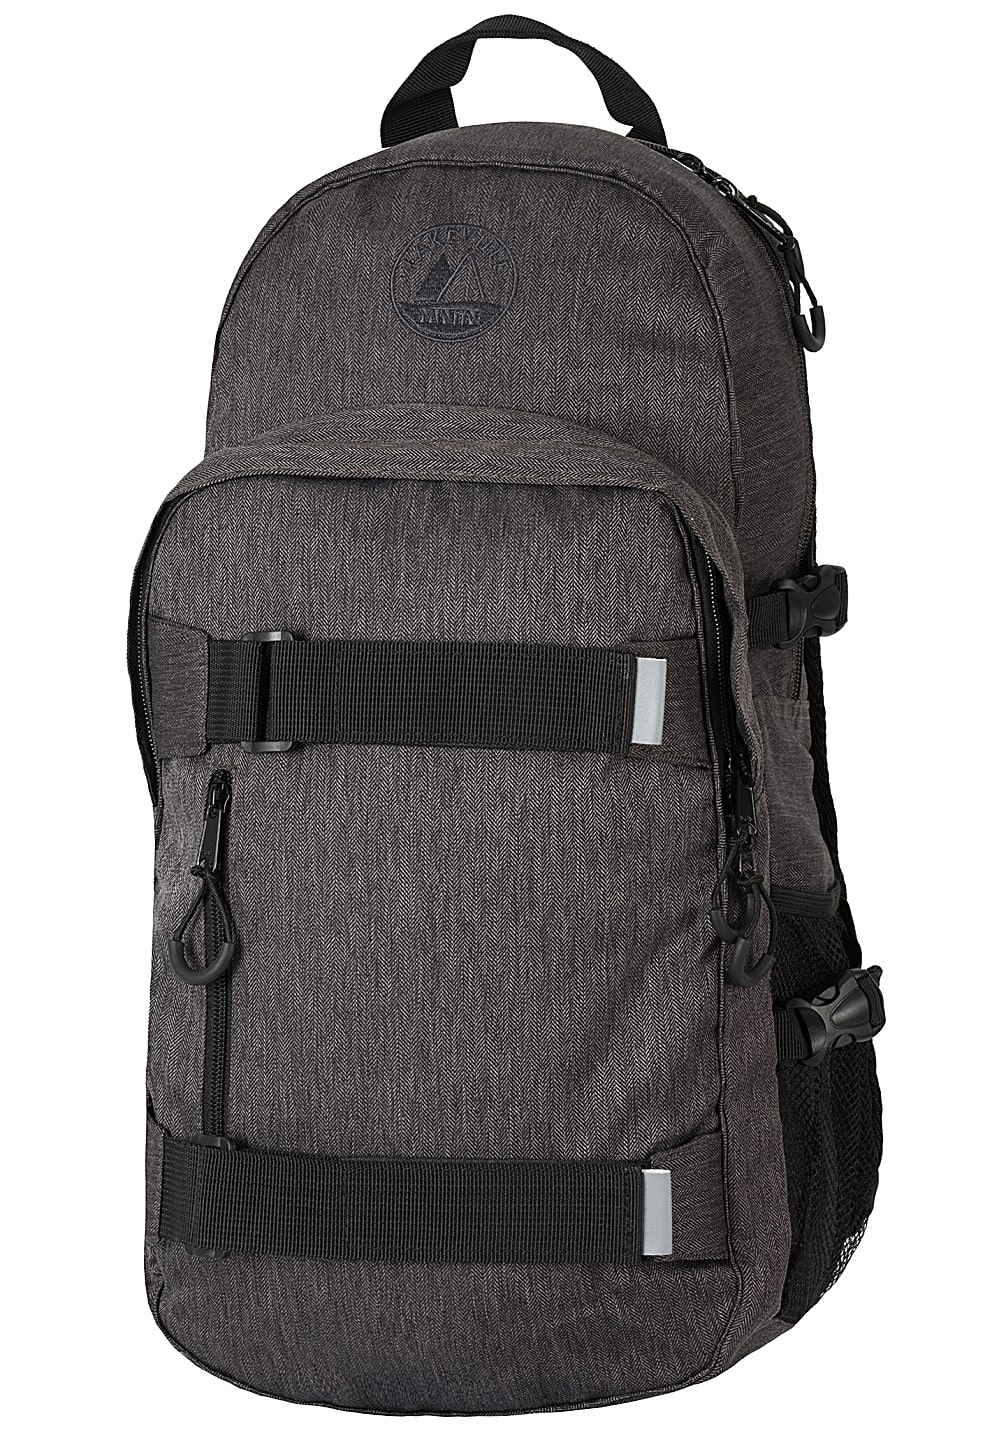 Lakeville Mountain Kemi Laptoprucksack Grau